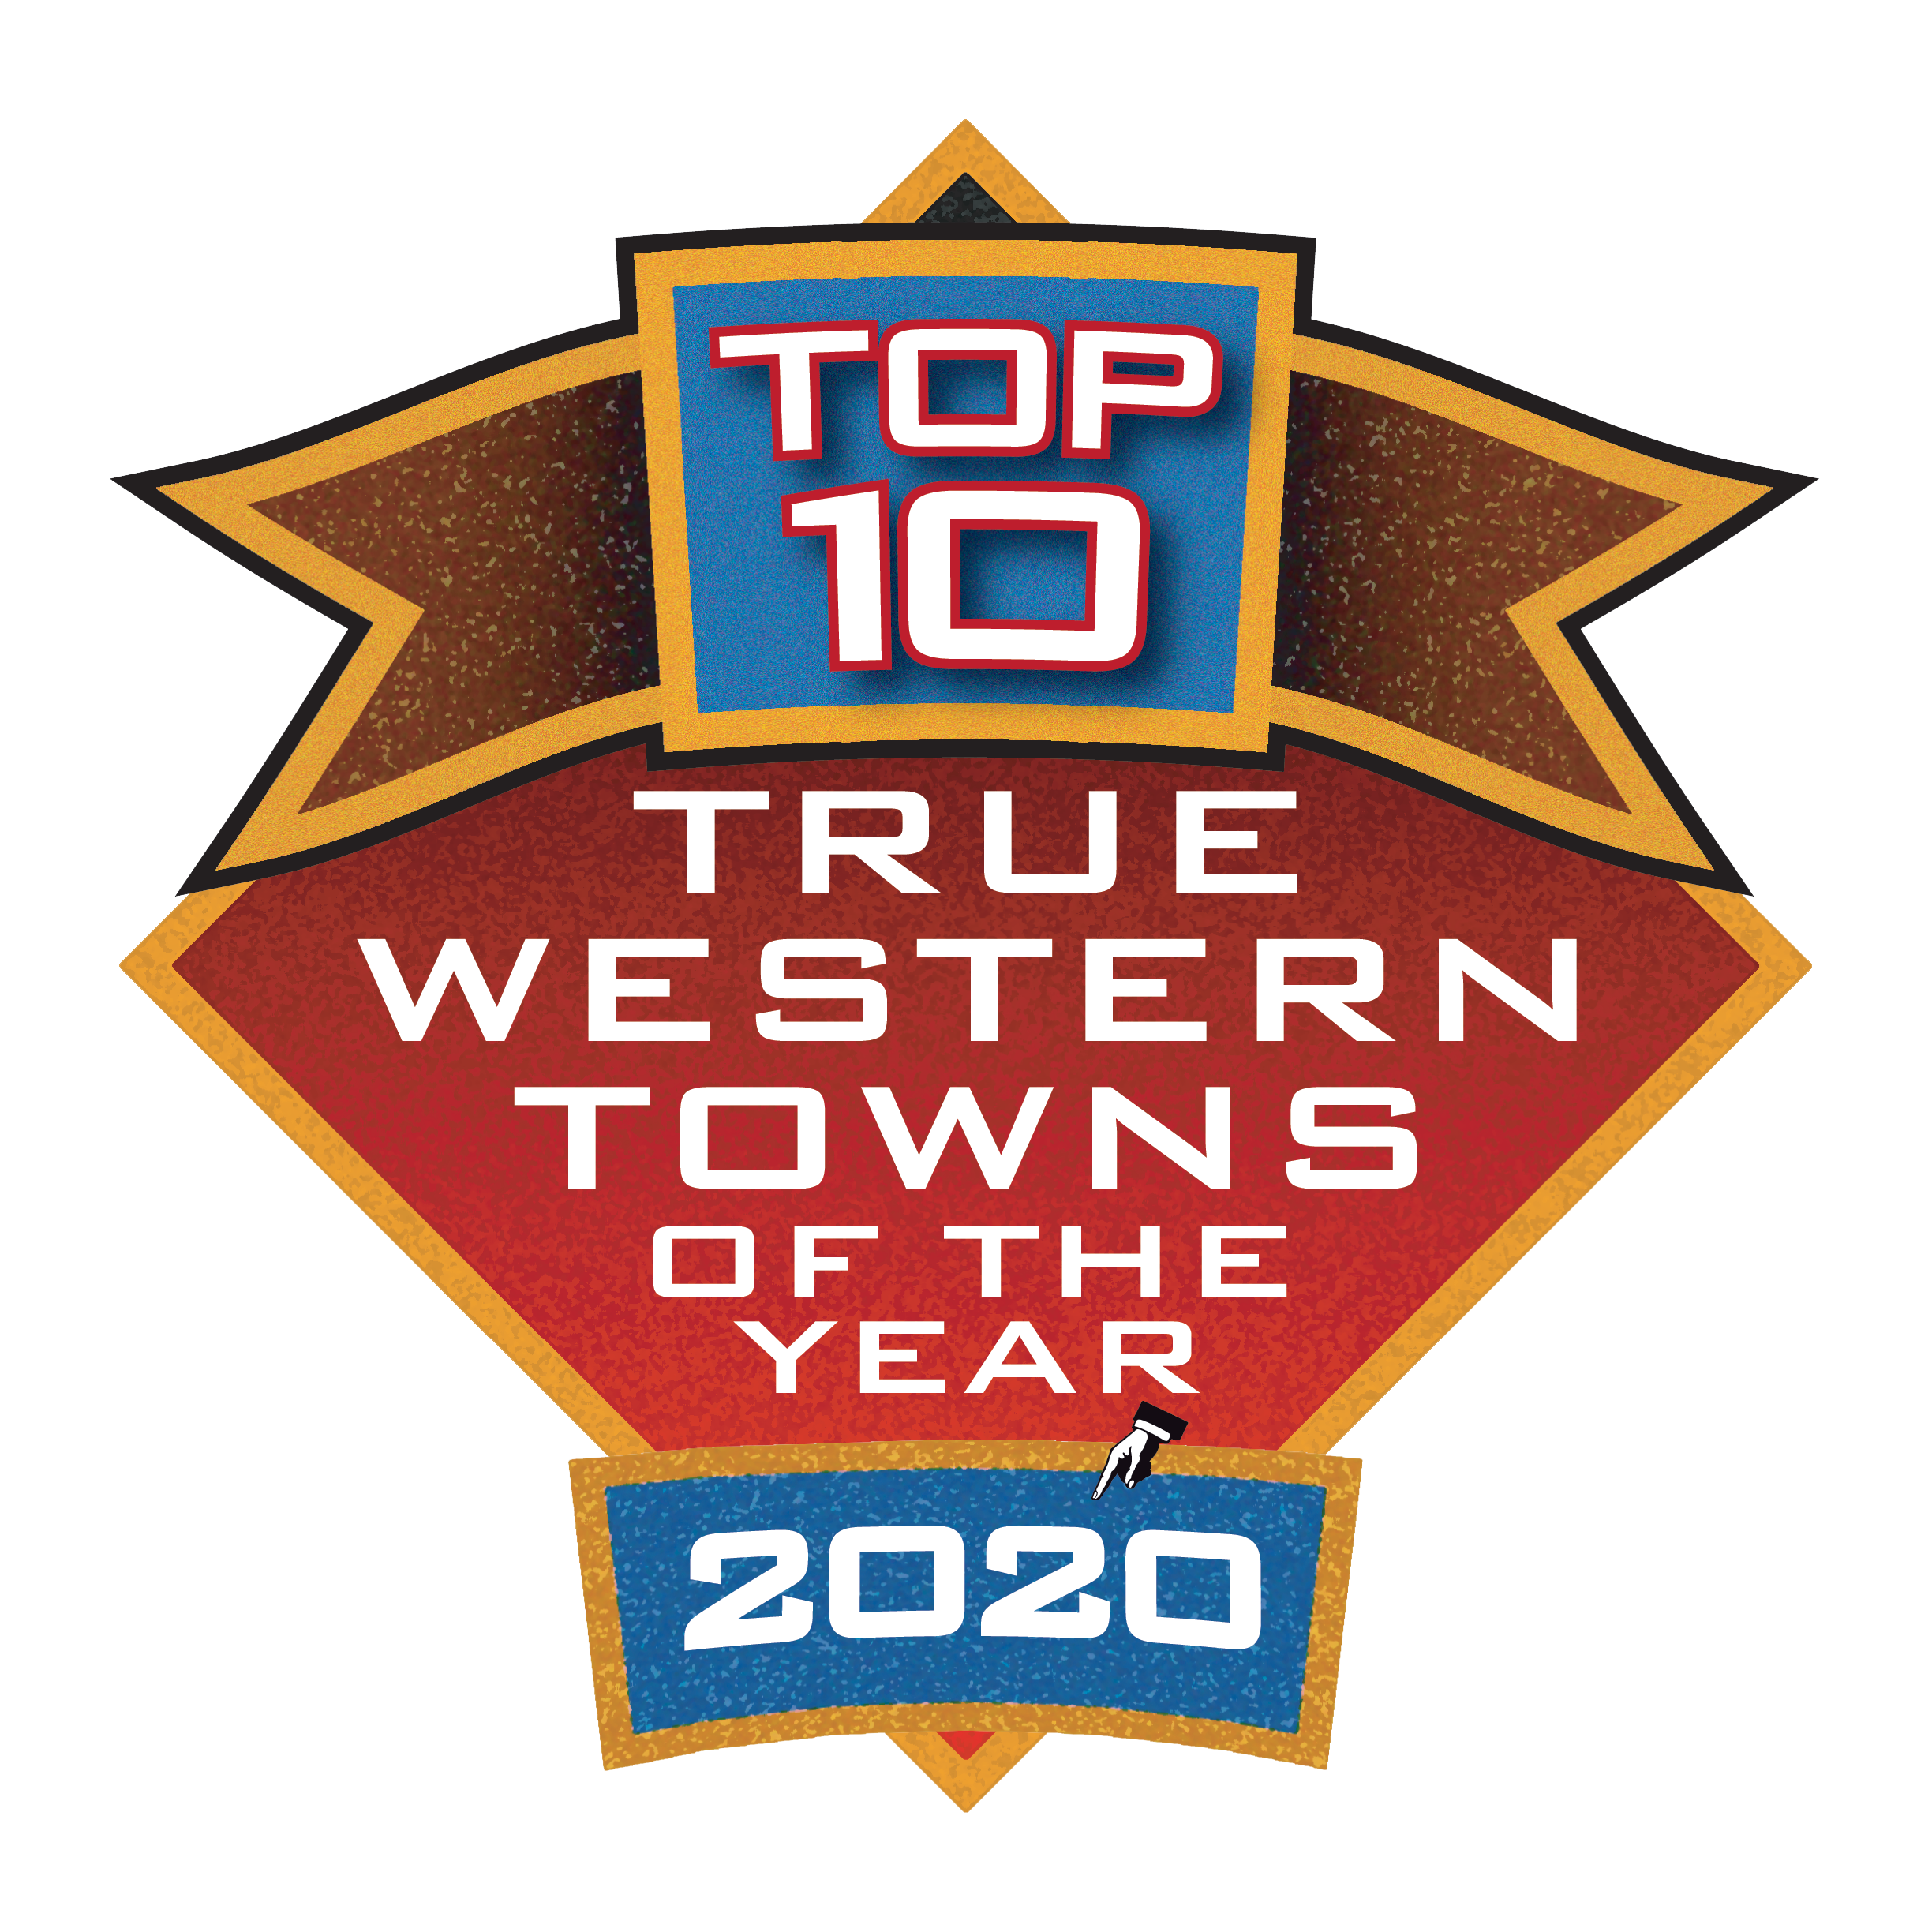 Top Western Towns Logo 2020